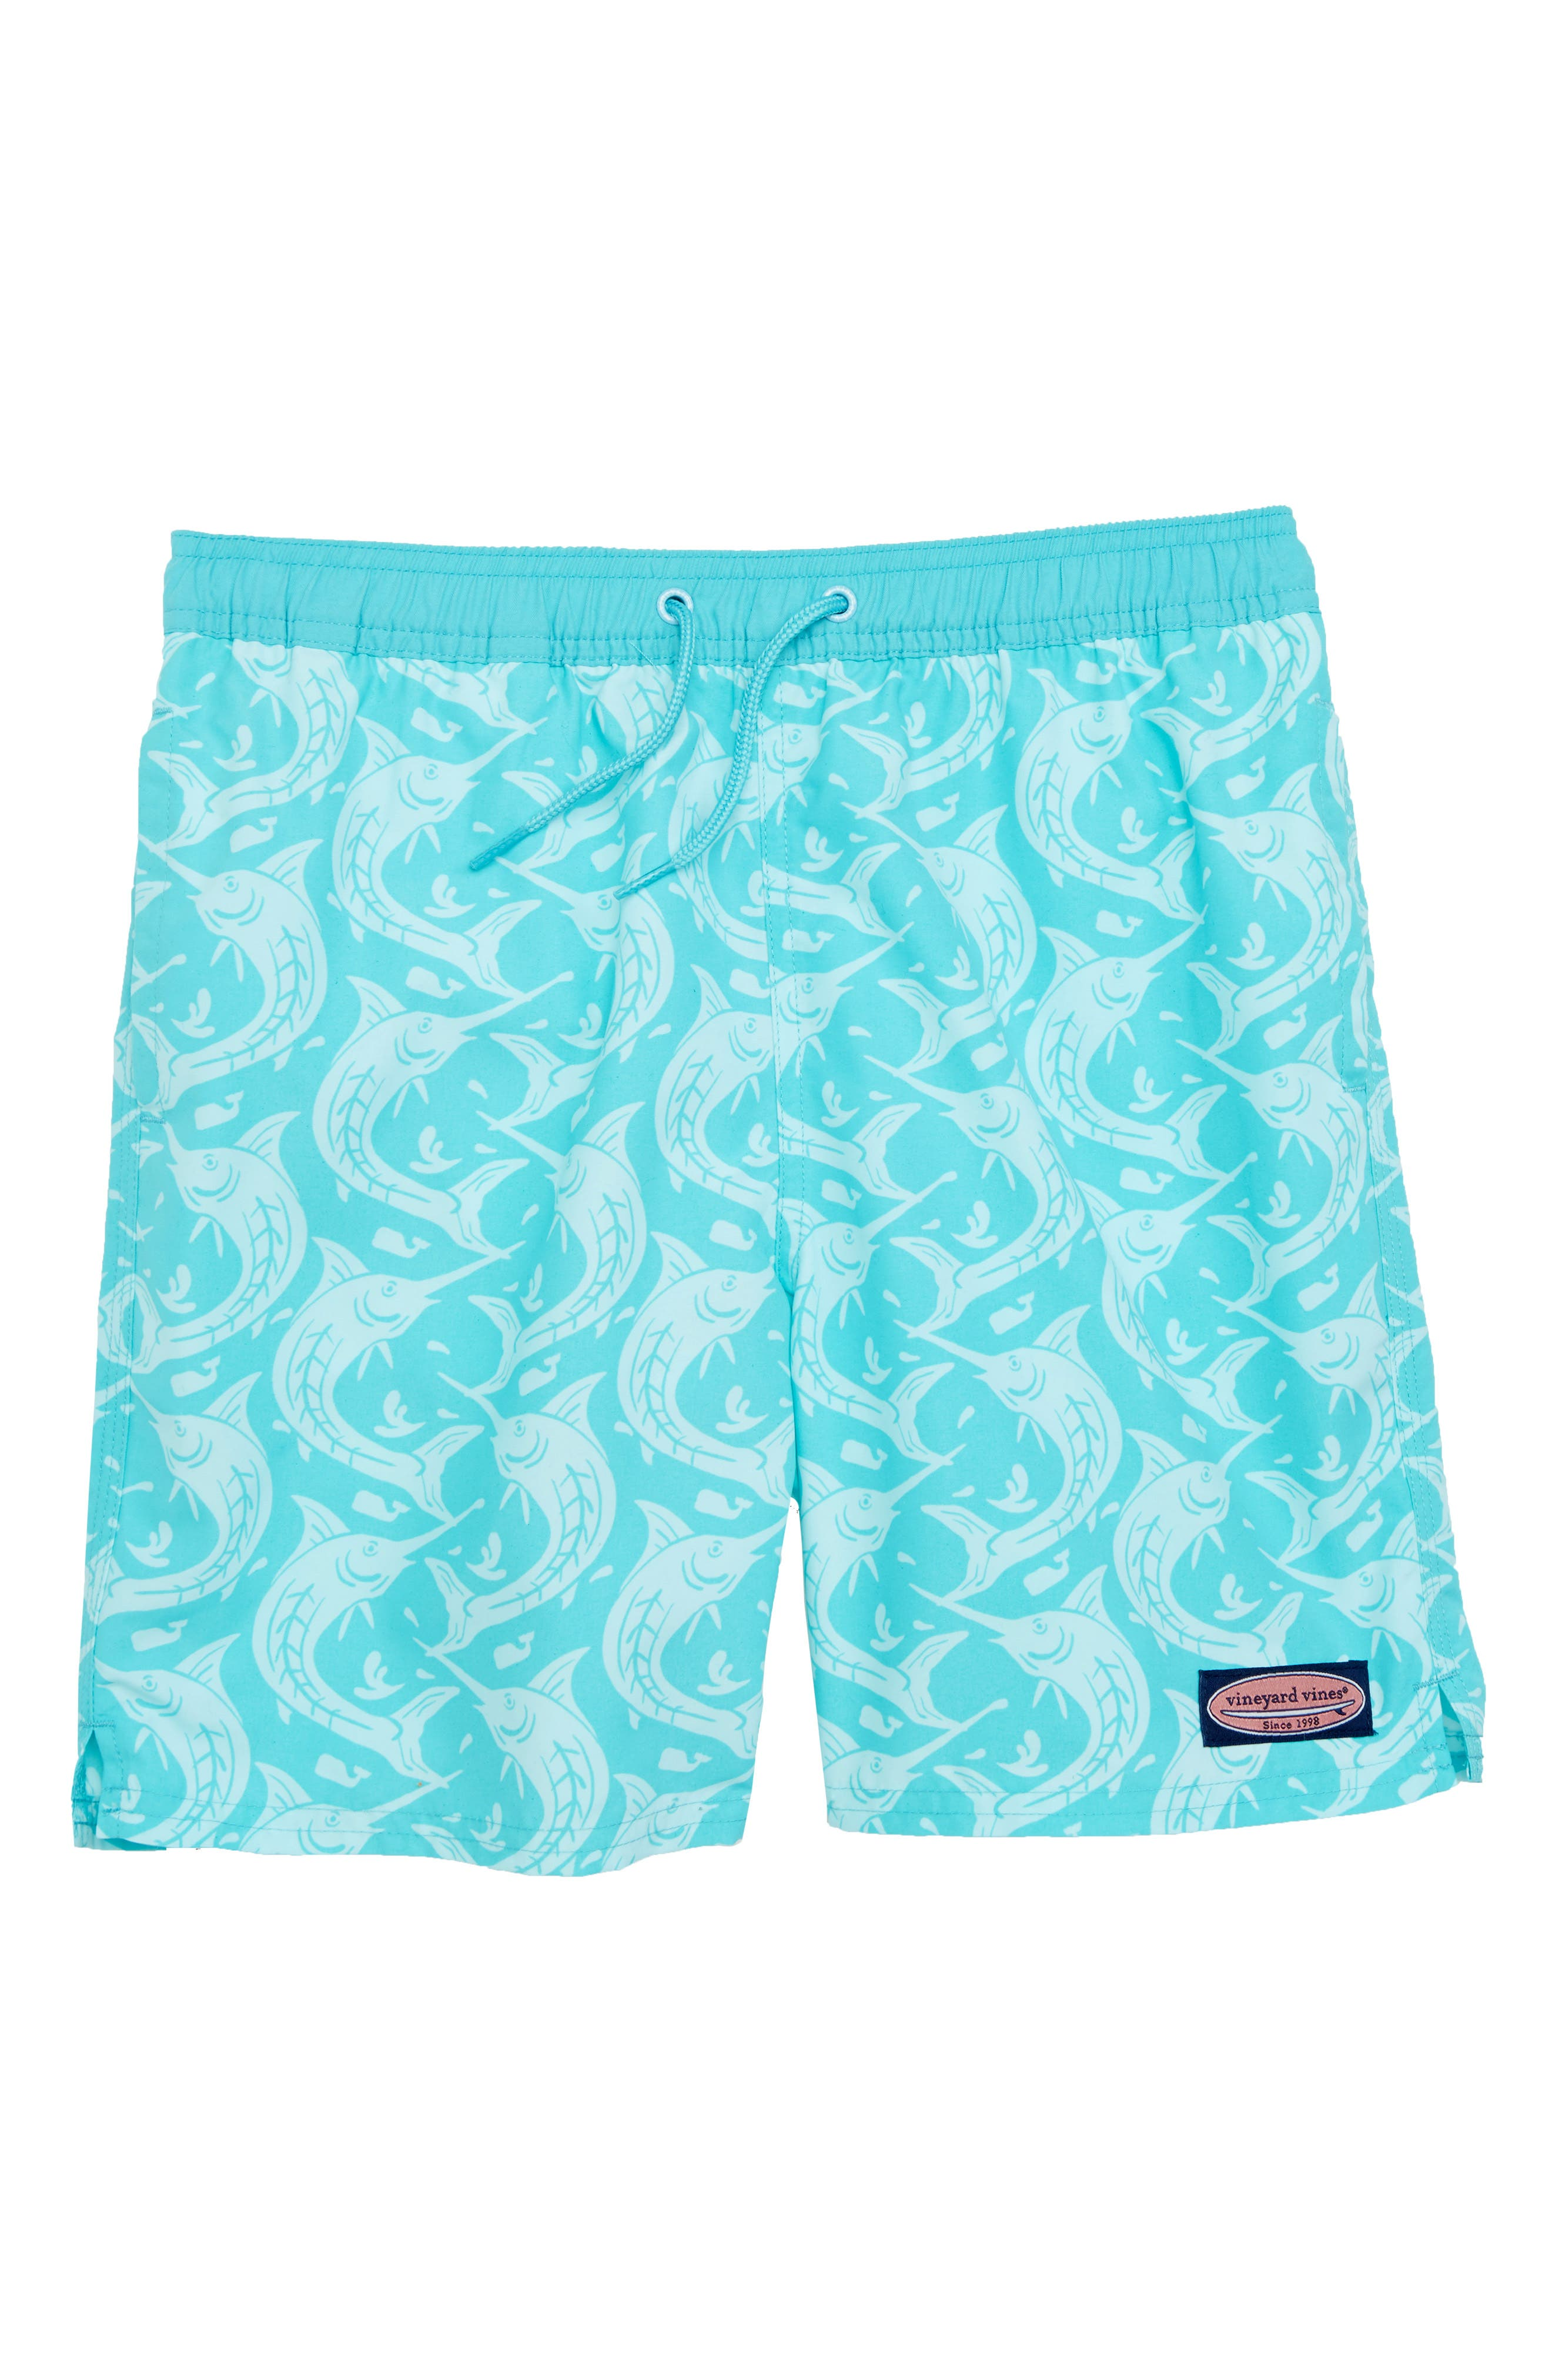 Marlin out of Water Swim Trunks,                             Main thumbnail 1, color,                             440